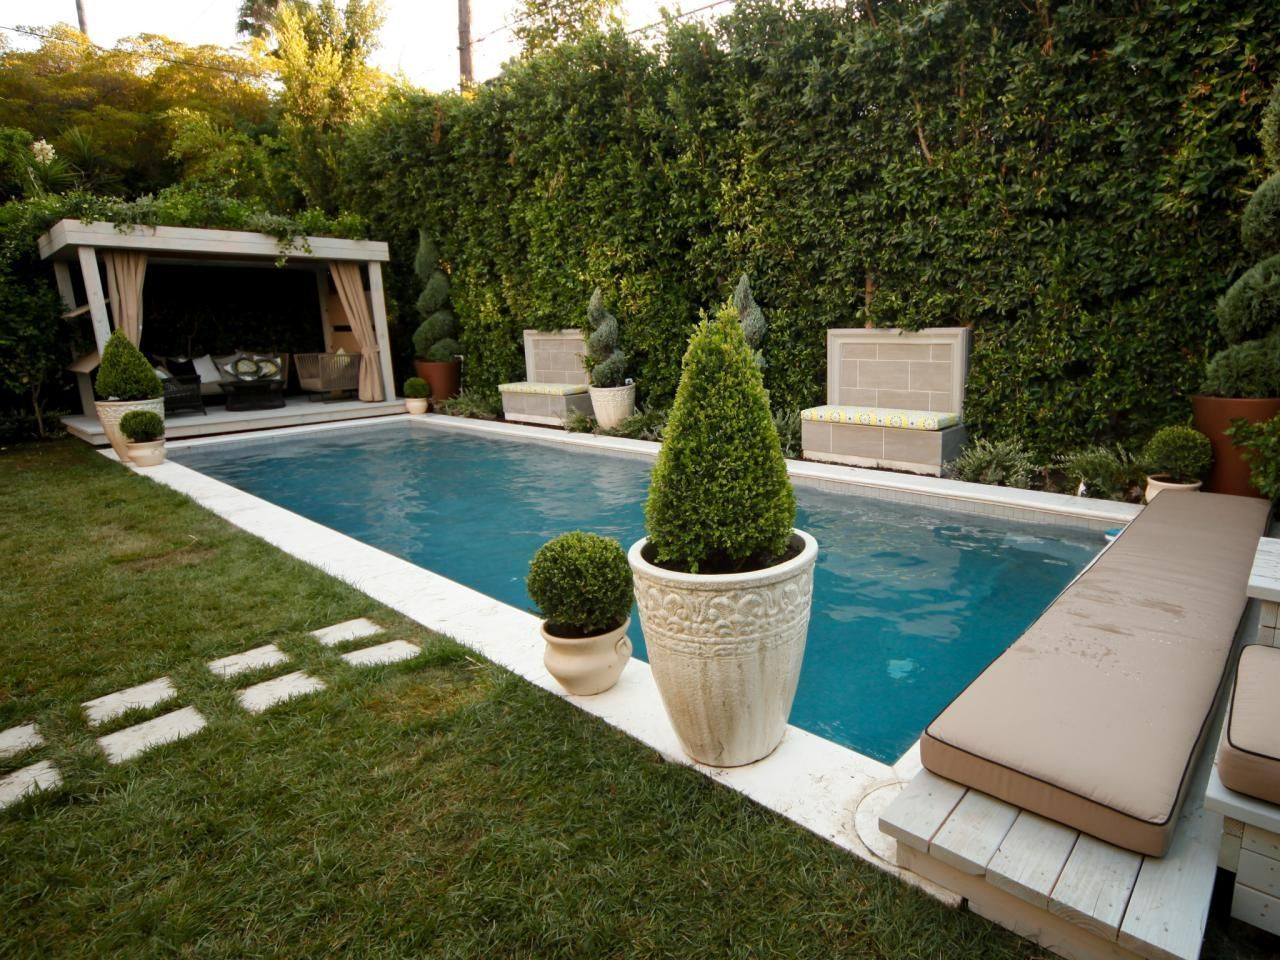 Host Jamie Durie Of The Outdoor Room Transforms The Swimming Pool Area At The Home Swimming Pools Backyard Landscape Small Backyard Pools Backyard Pool Designs